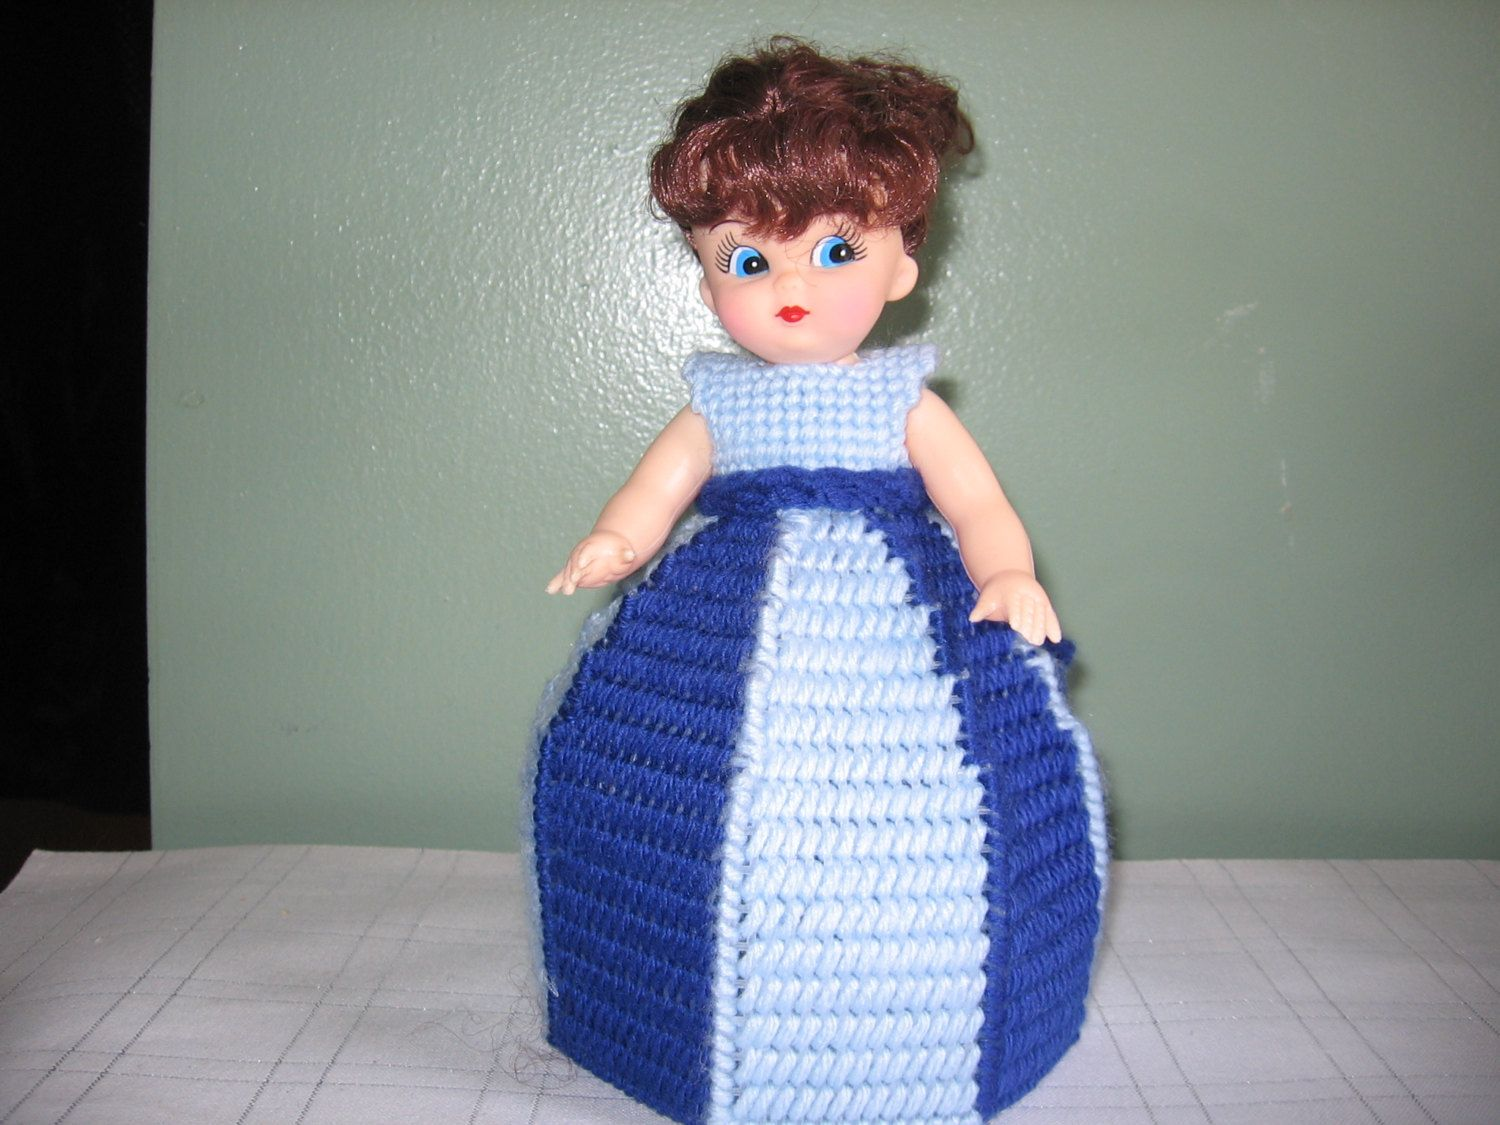 Royal Blue/Light Blue Collectible Doll - use for decoration or Air Freshner!! by CreationsbyAMJ on Etsy #airfreshnerdolls